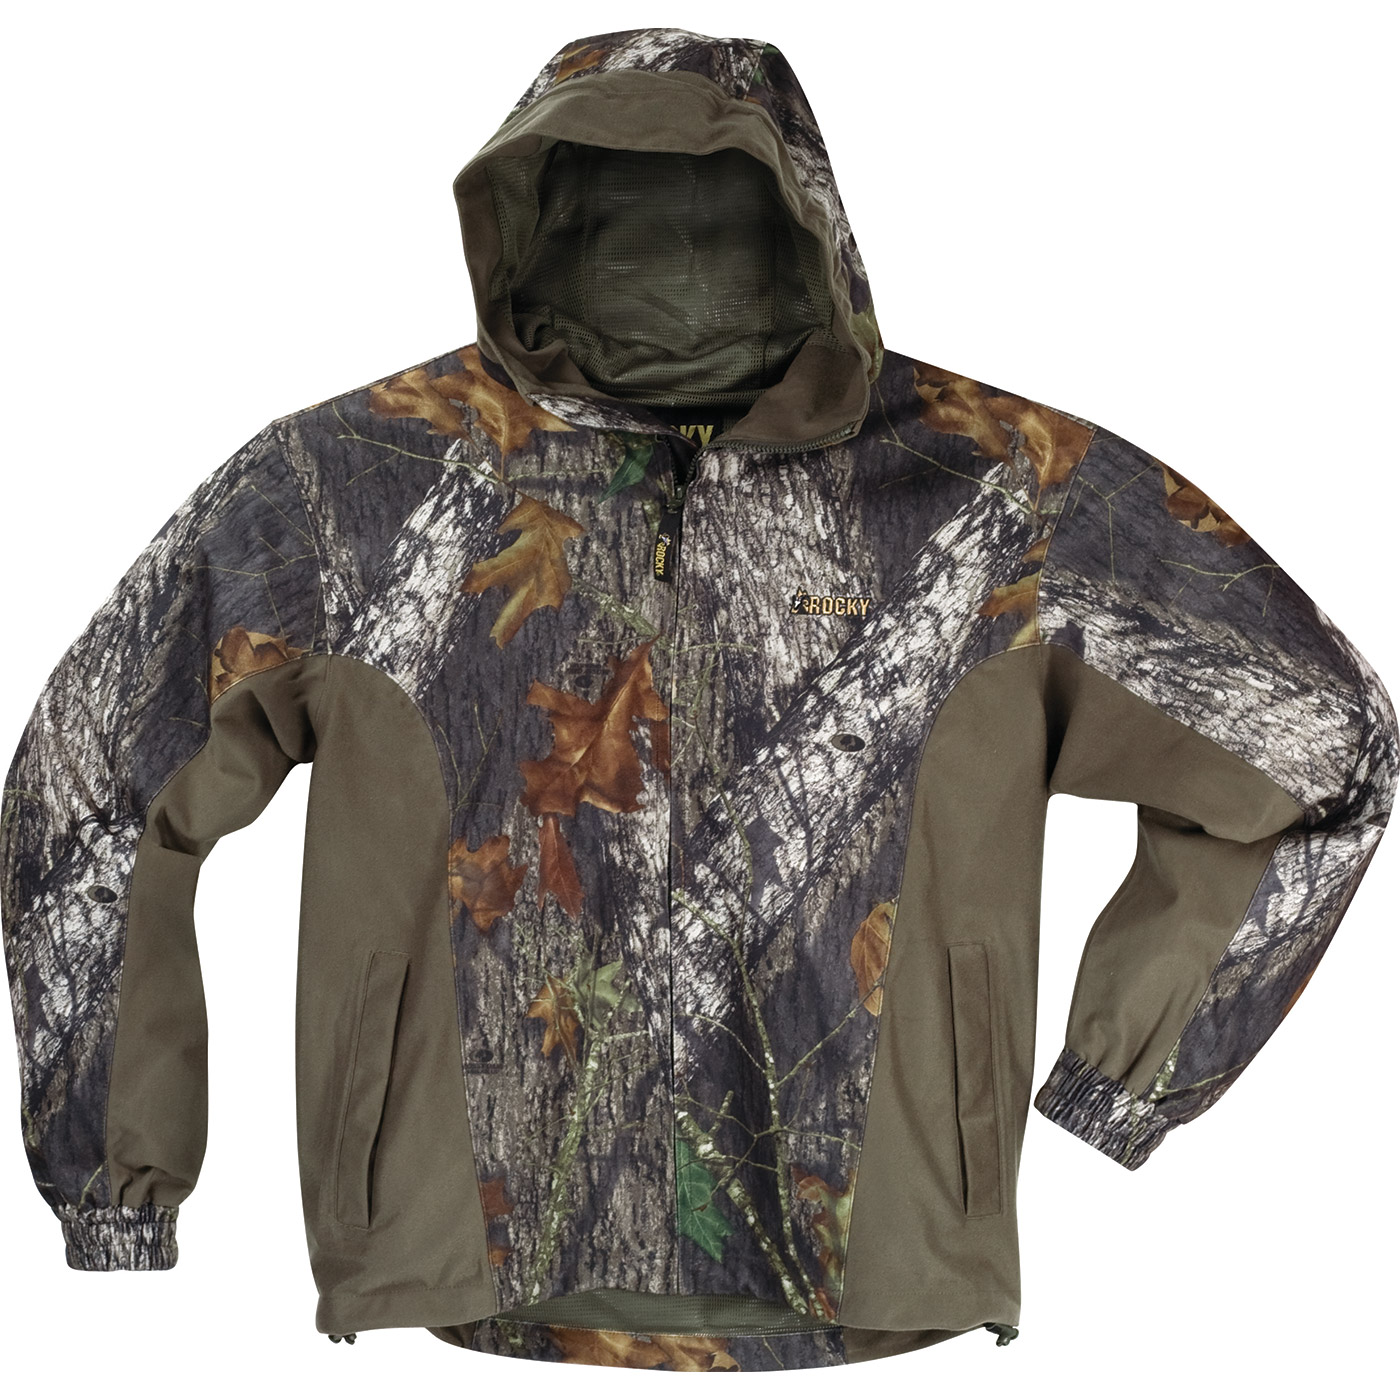 67e69d1454a06 Rocky made this men's ProHunter hooded jacket with concealing camo ...